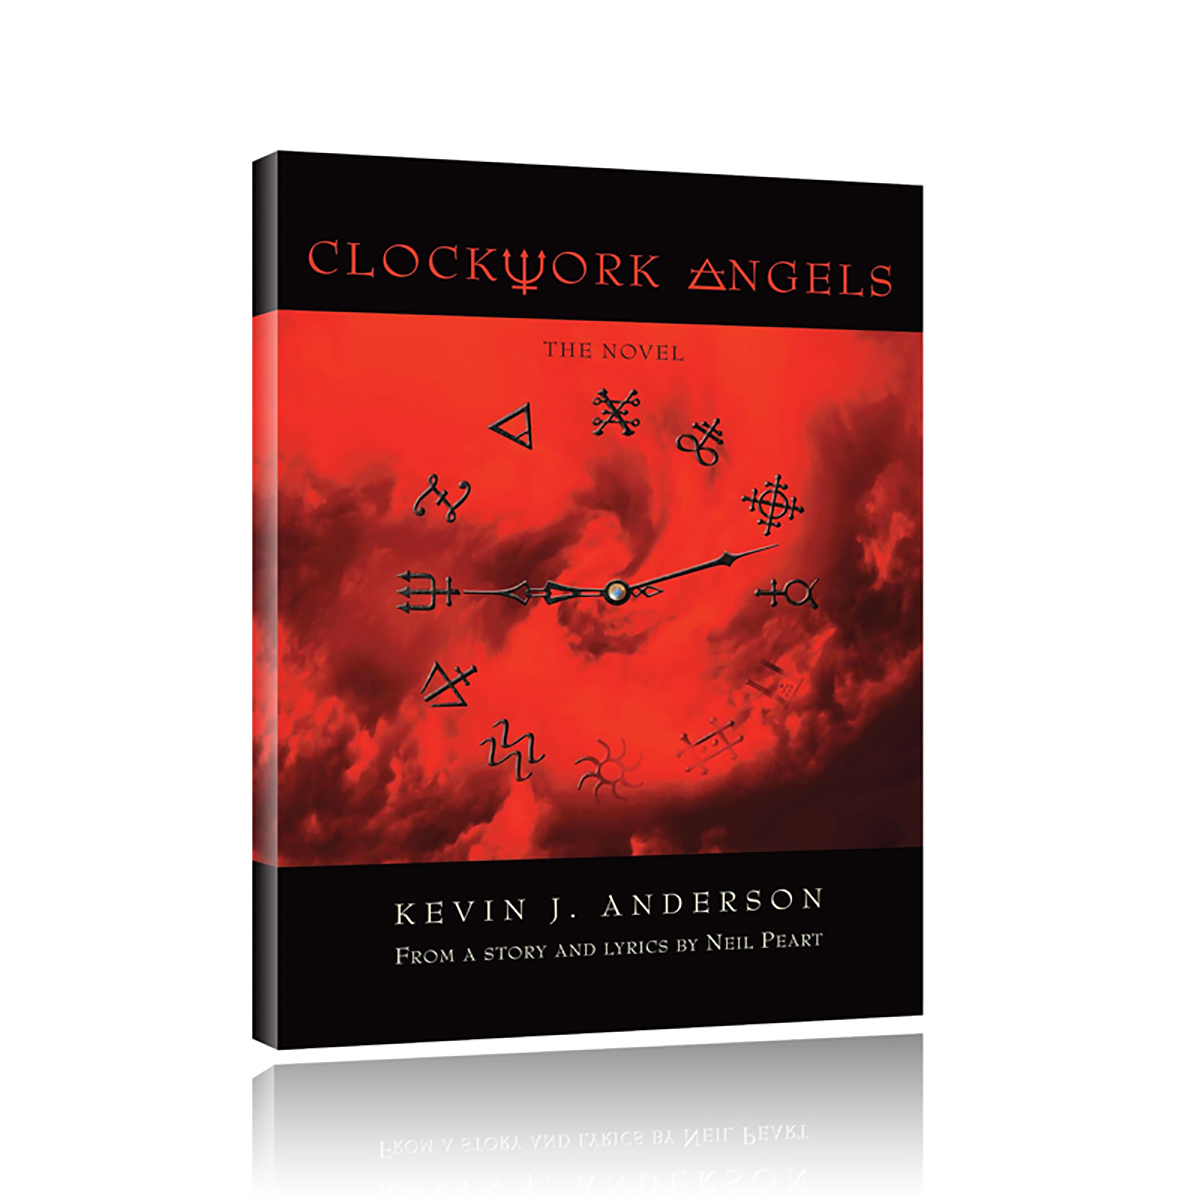 Clockwork Angels Hardcover Book